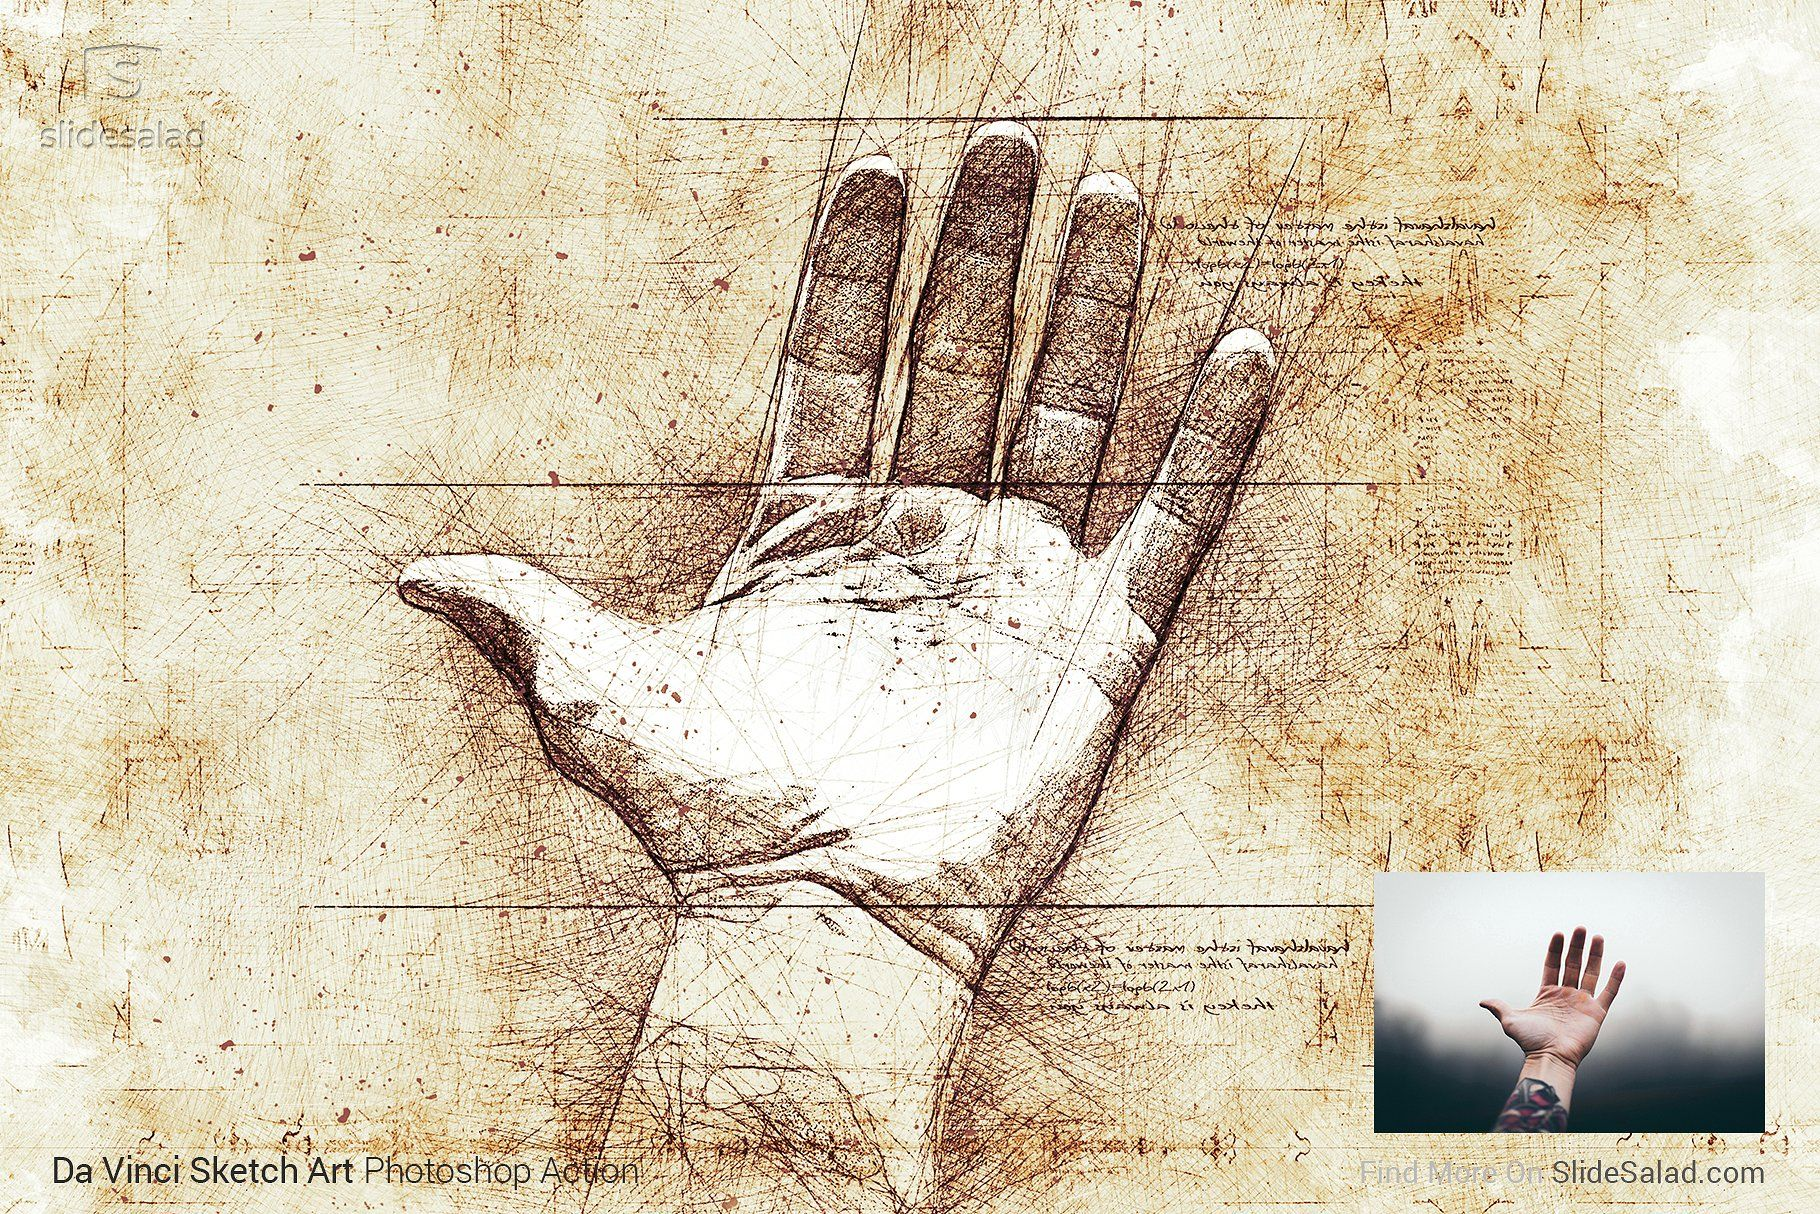 Da Vinci Sketch Art Photoshop Action Da Vinci Sketches